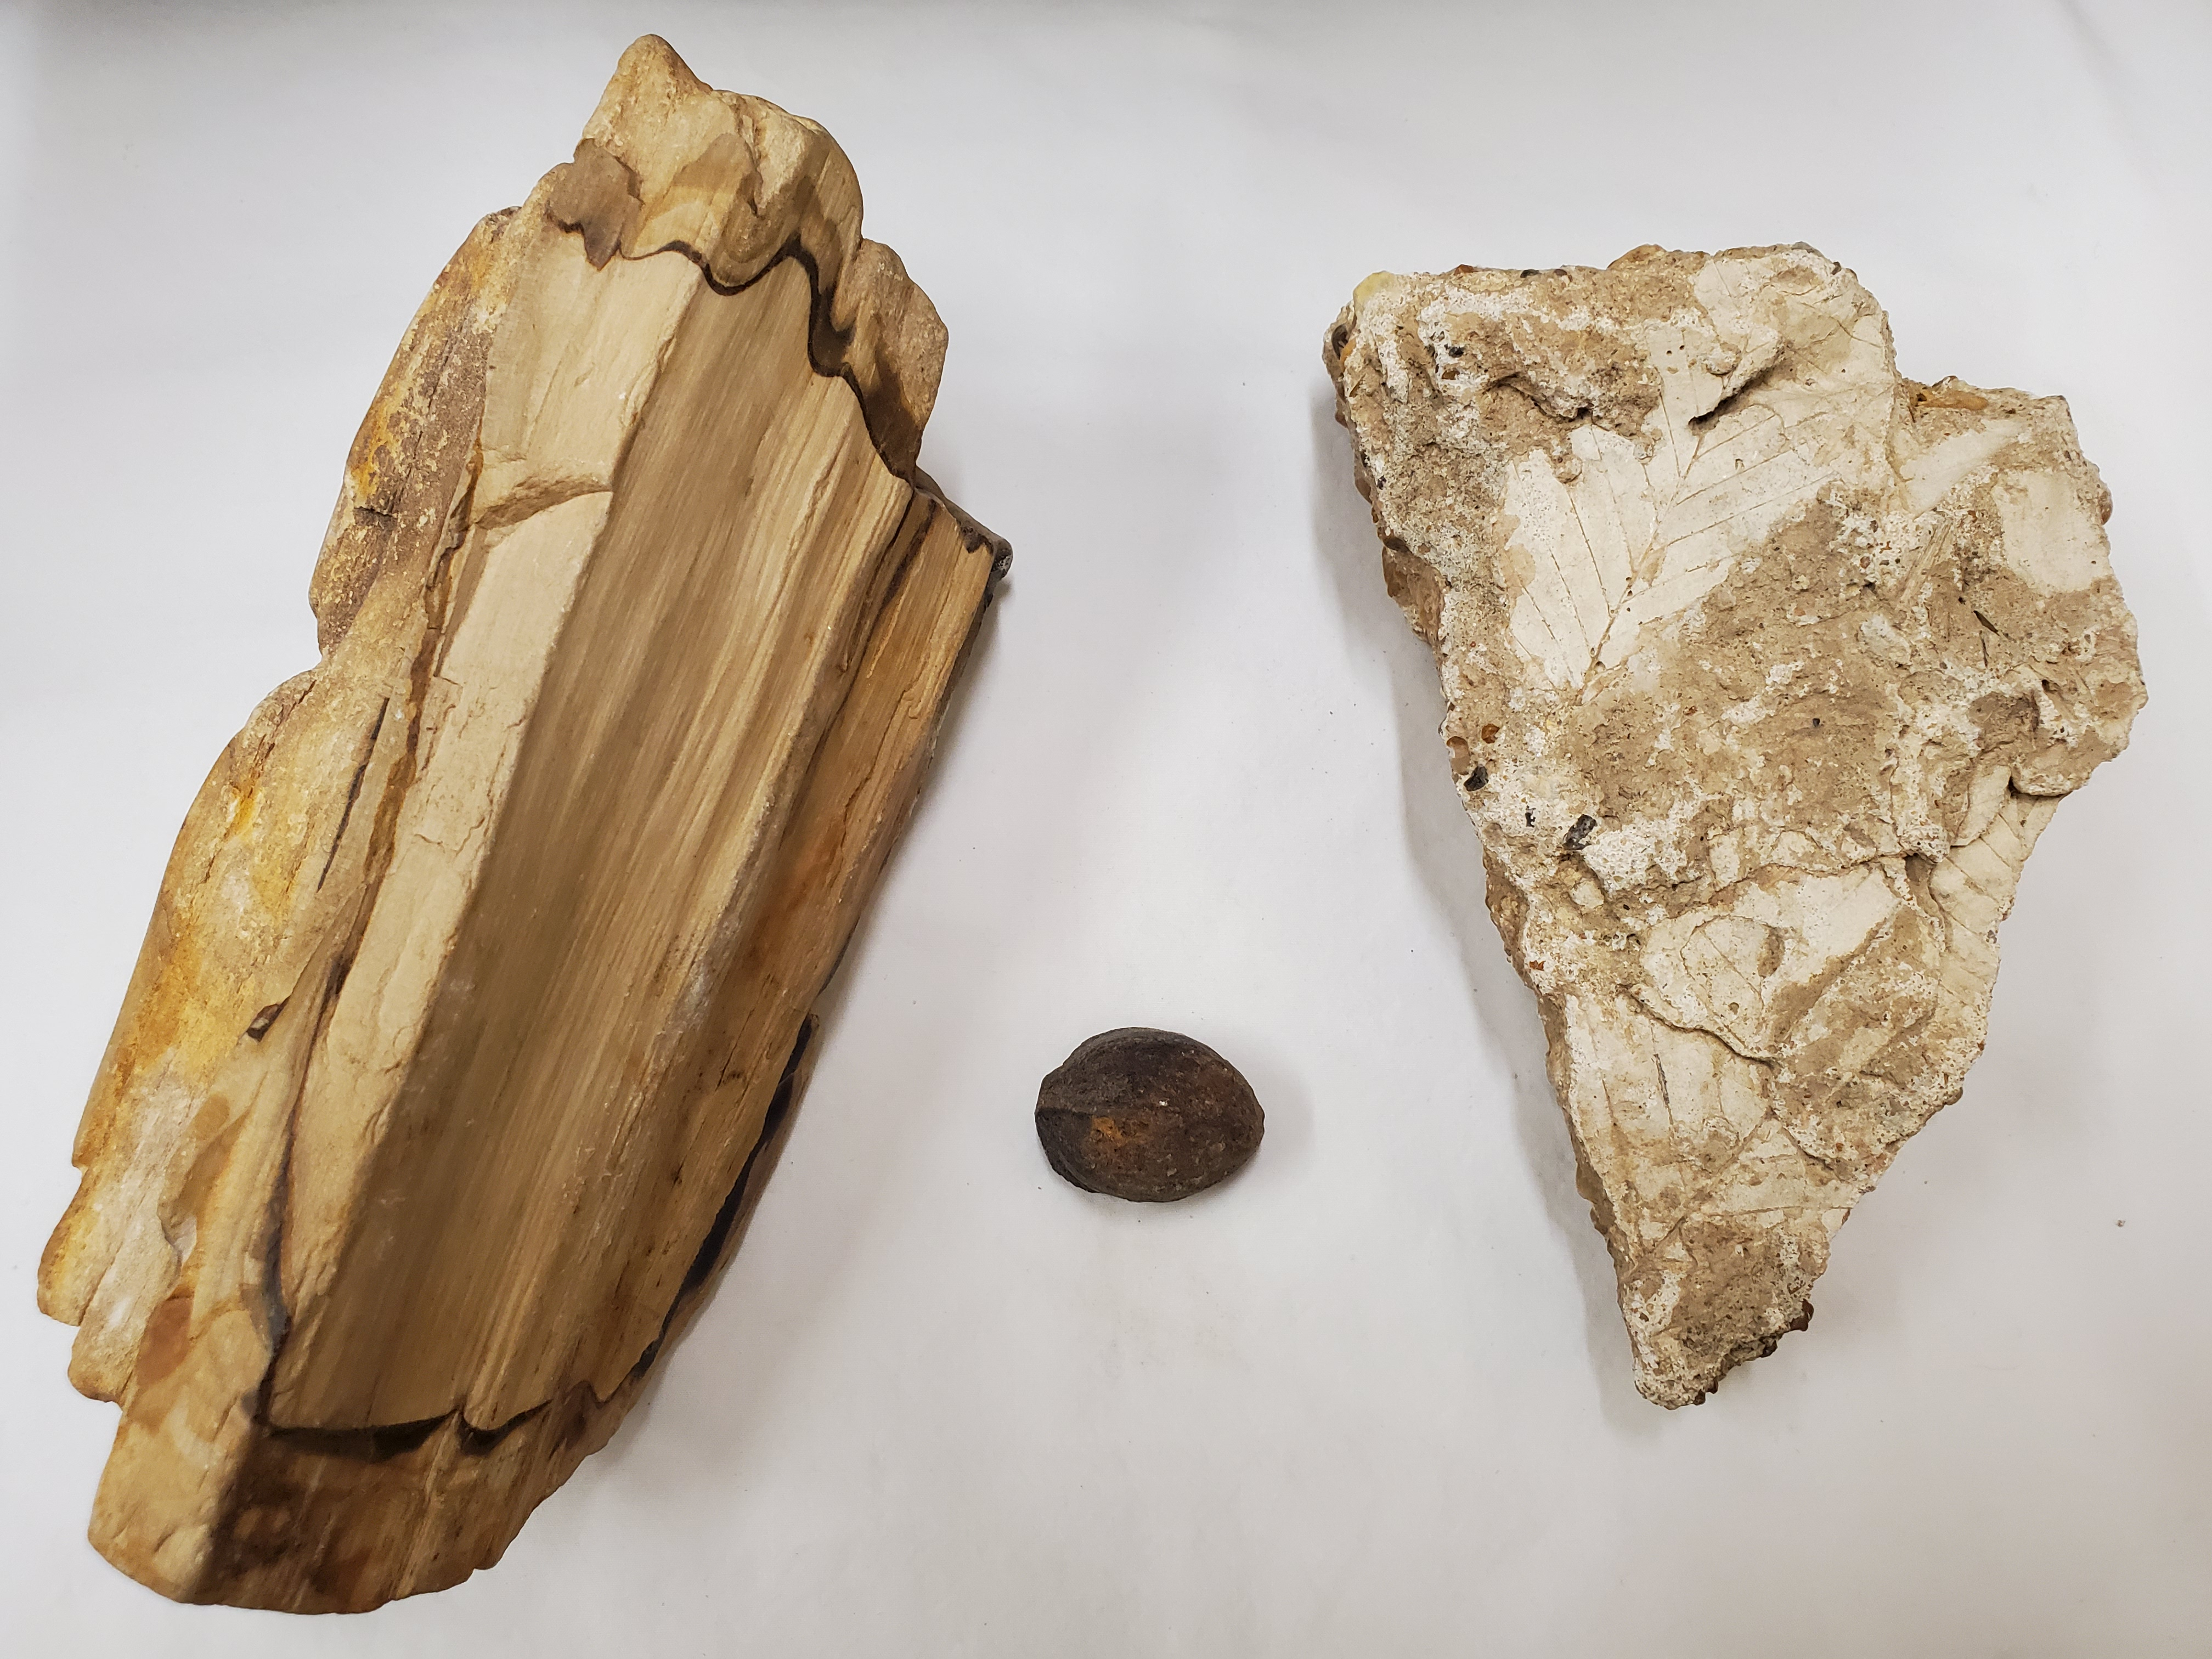 From left to right: A piece of petrified wood, a petrified nut, and a piece of rock with leaf imprints on a white background